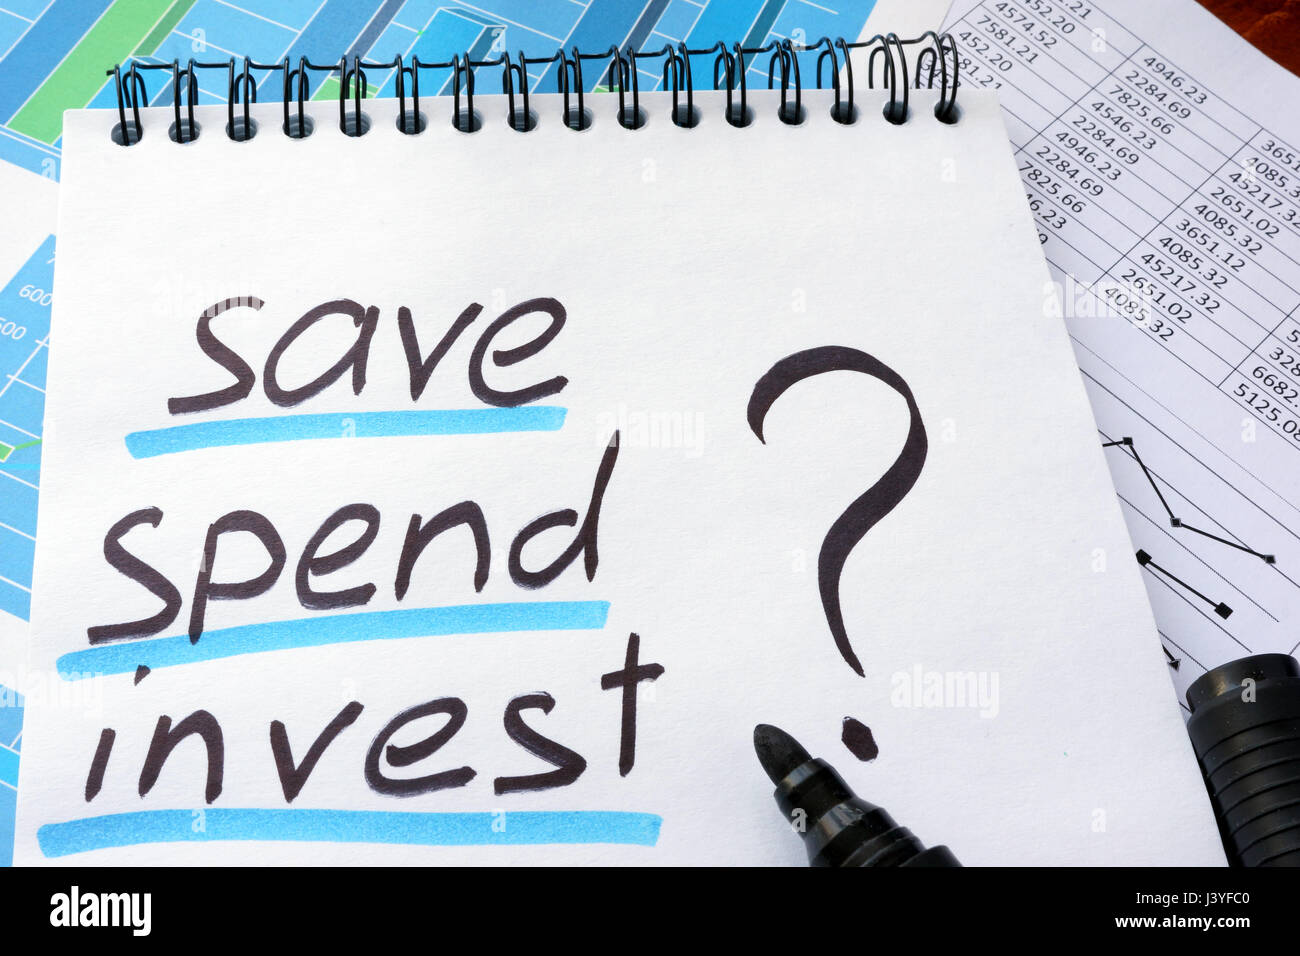 Note with words save spend invest and marker. - Stock Image